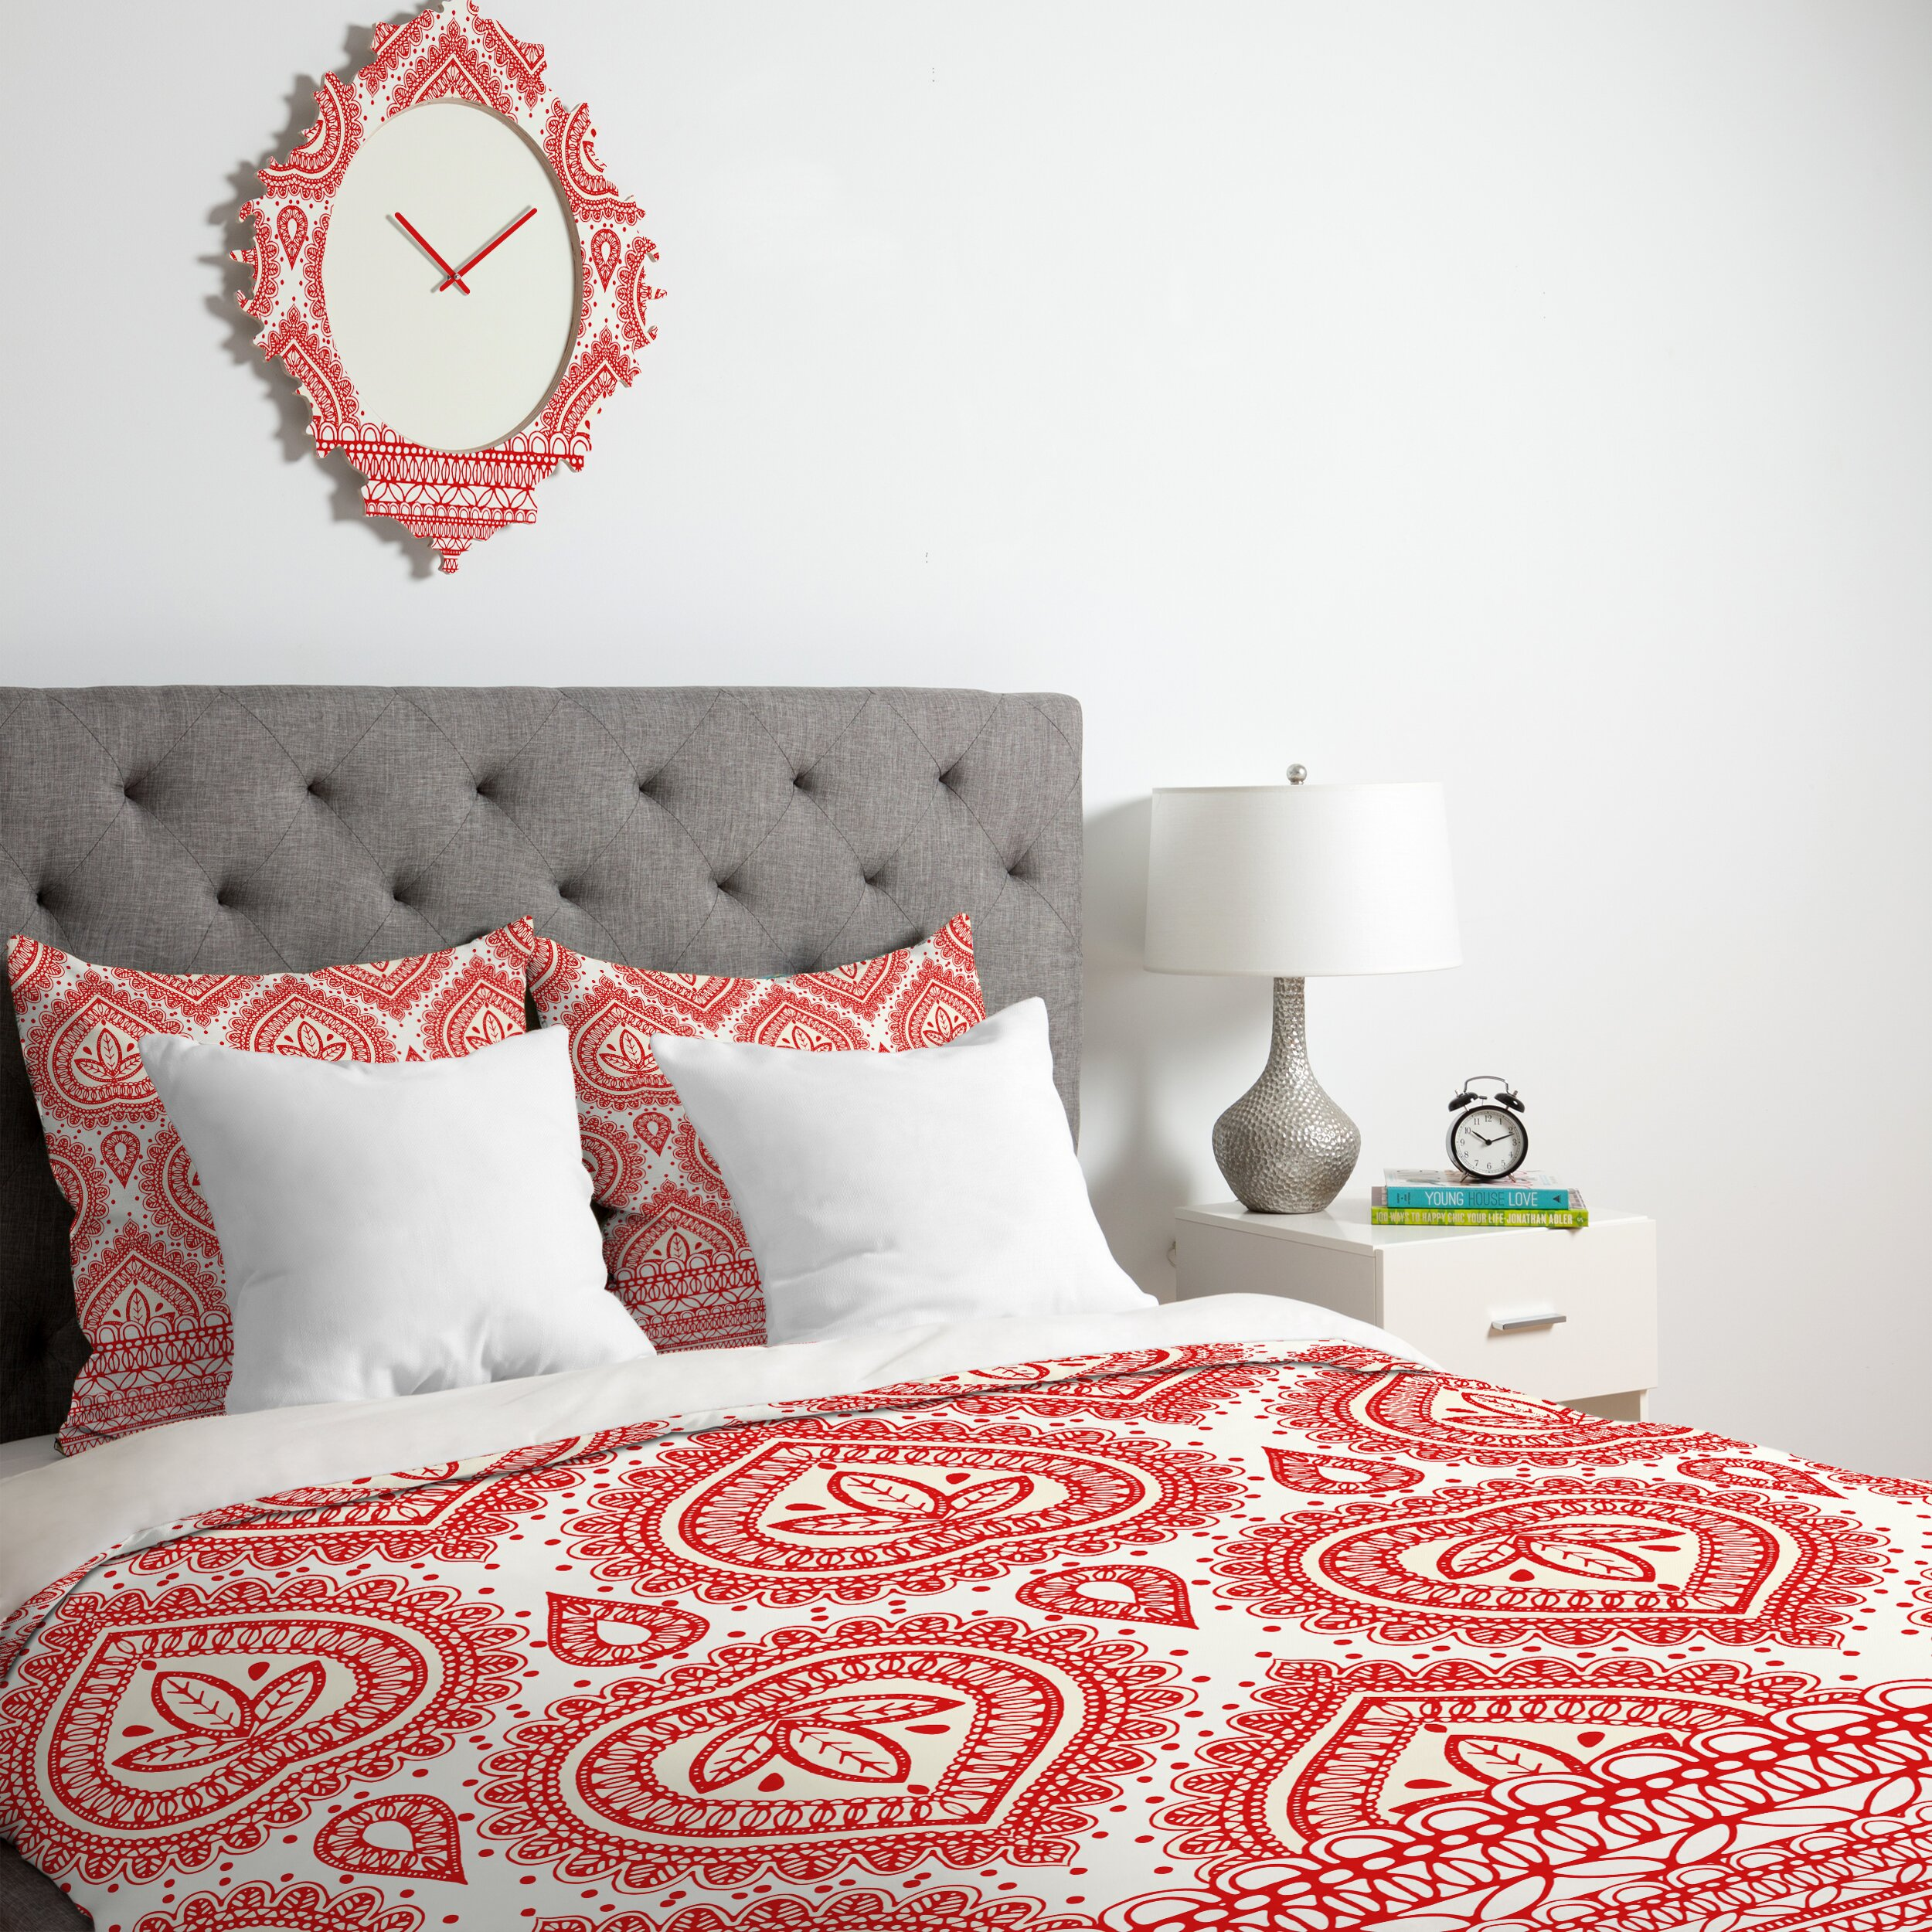 Deny Designs Aimee St Hill Decorative Duvet Cover